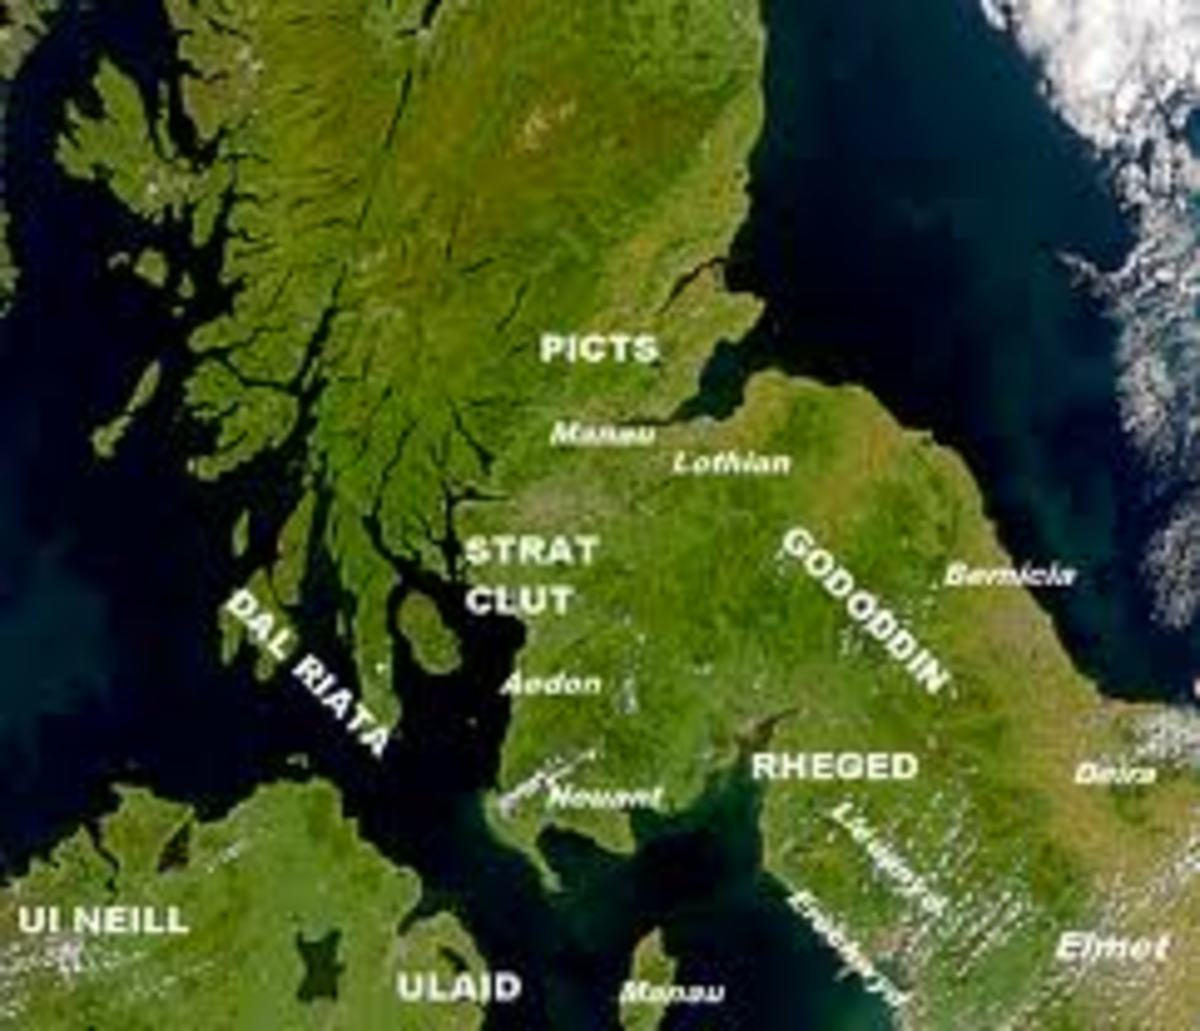 The Lost Kingdom of Pictland: Scotland's Forgotten Legacy